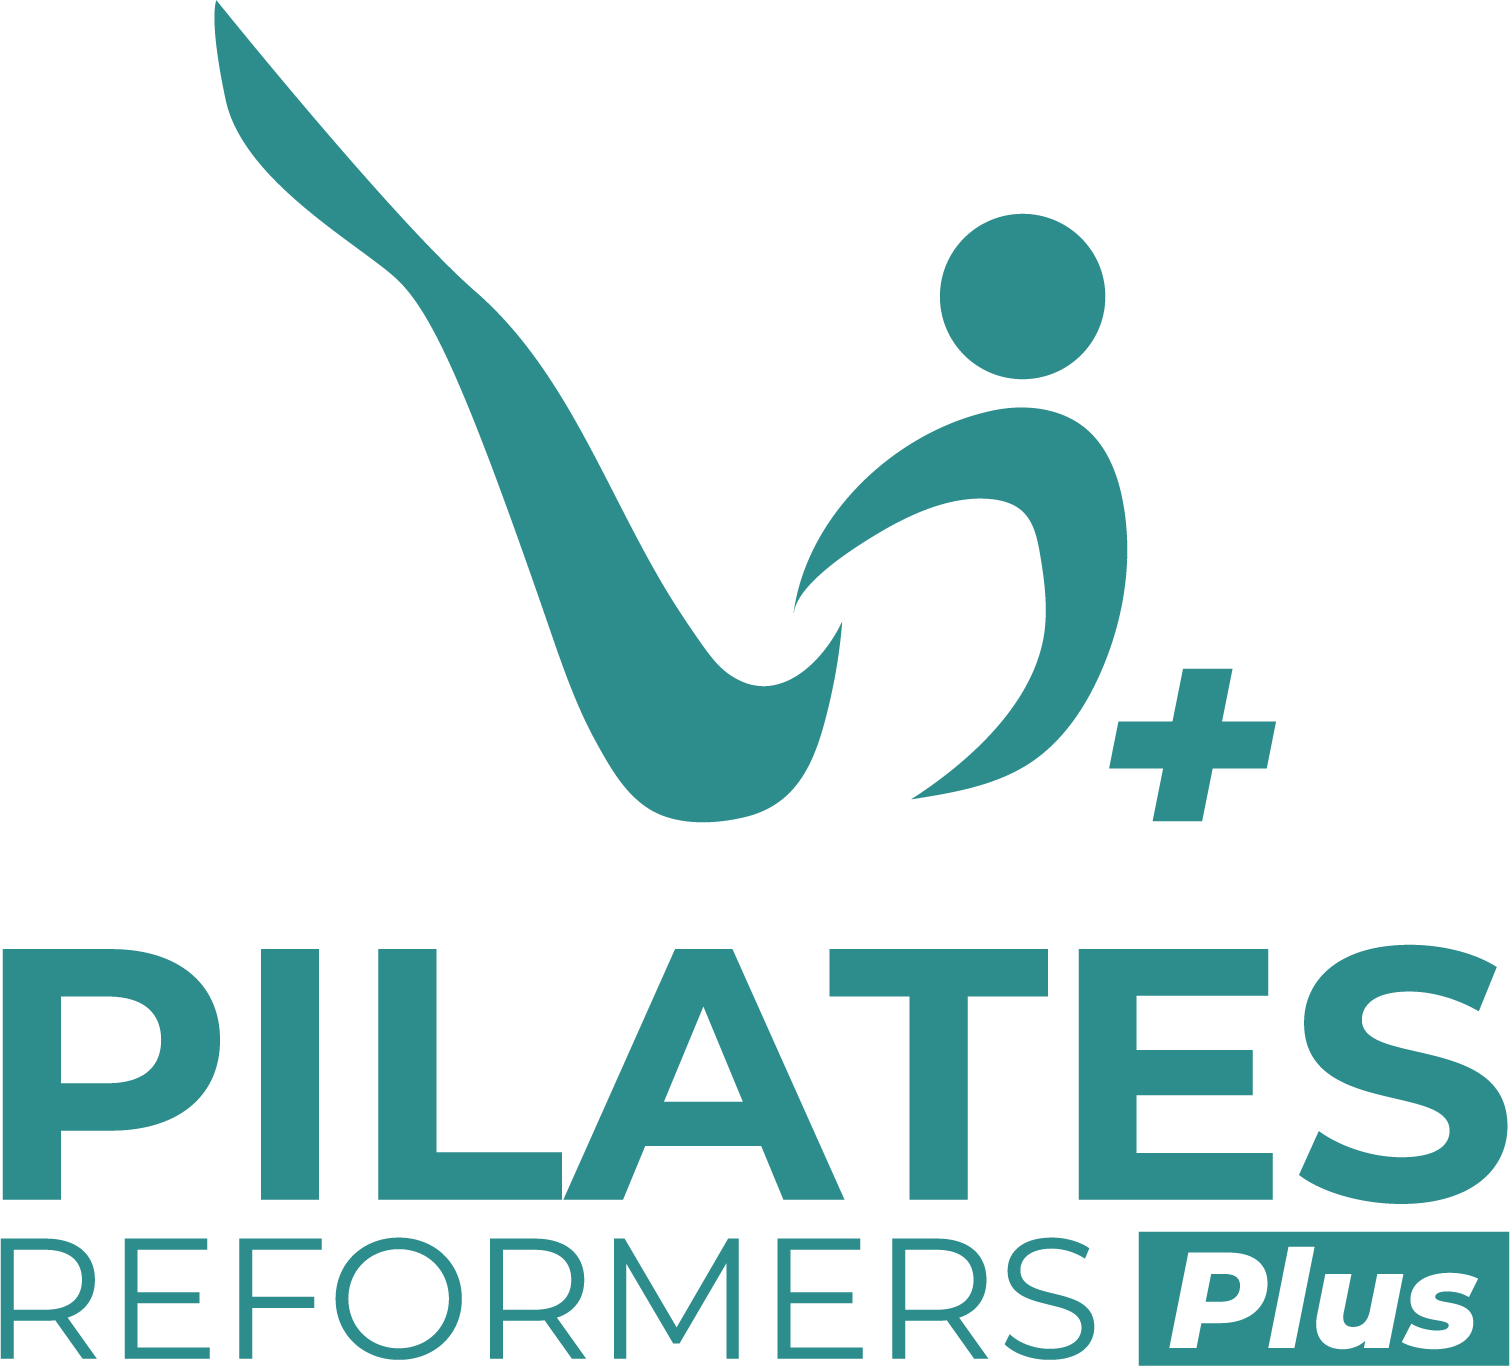 Pilates Reformer Buyer's Guide 2020 - Pilates Reformers Plus